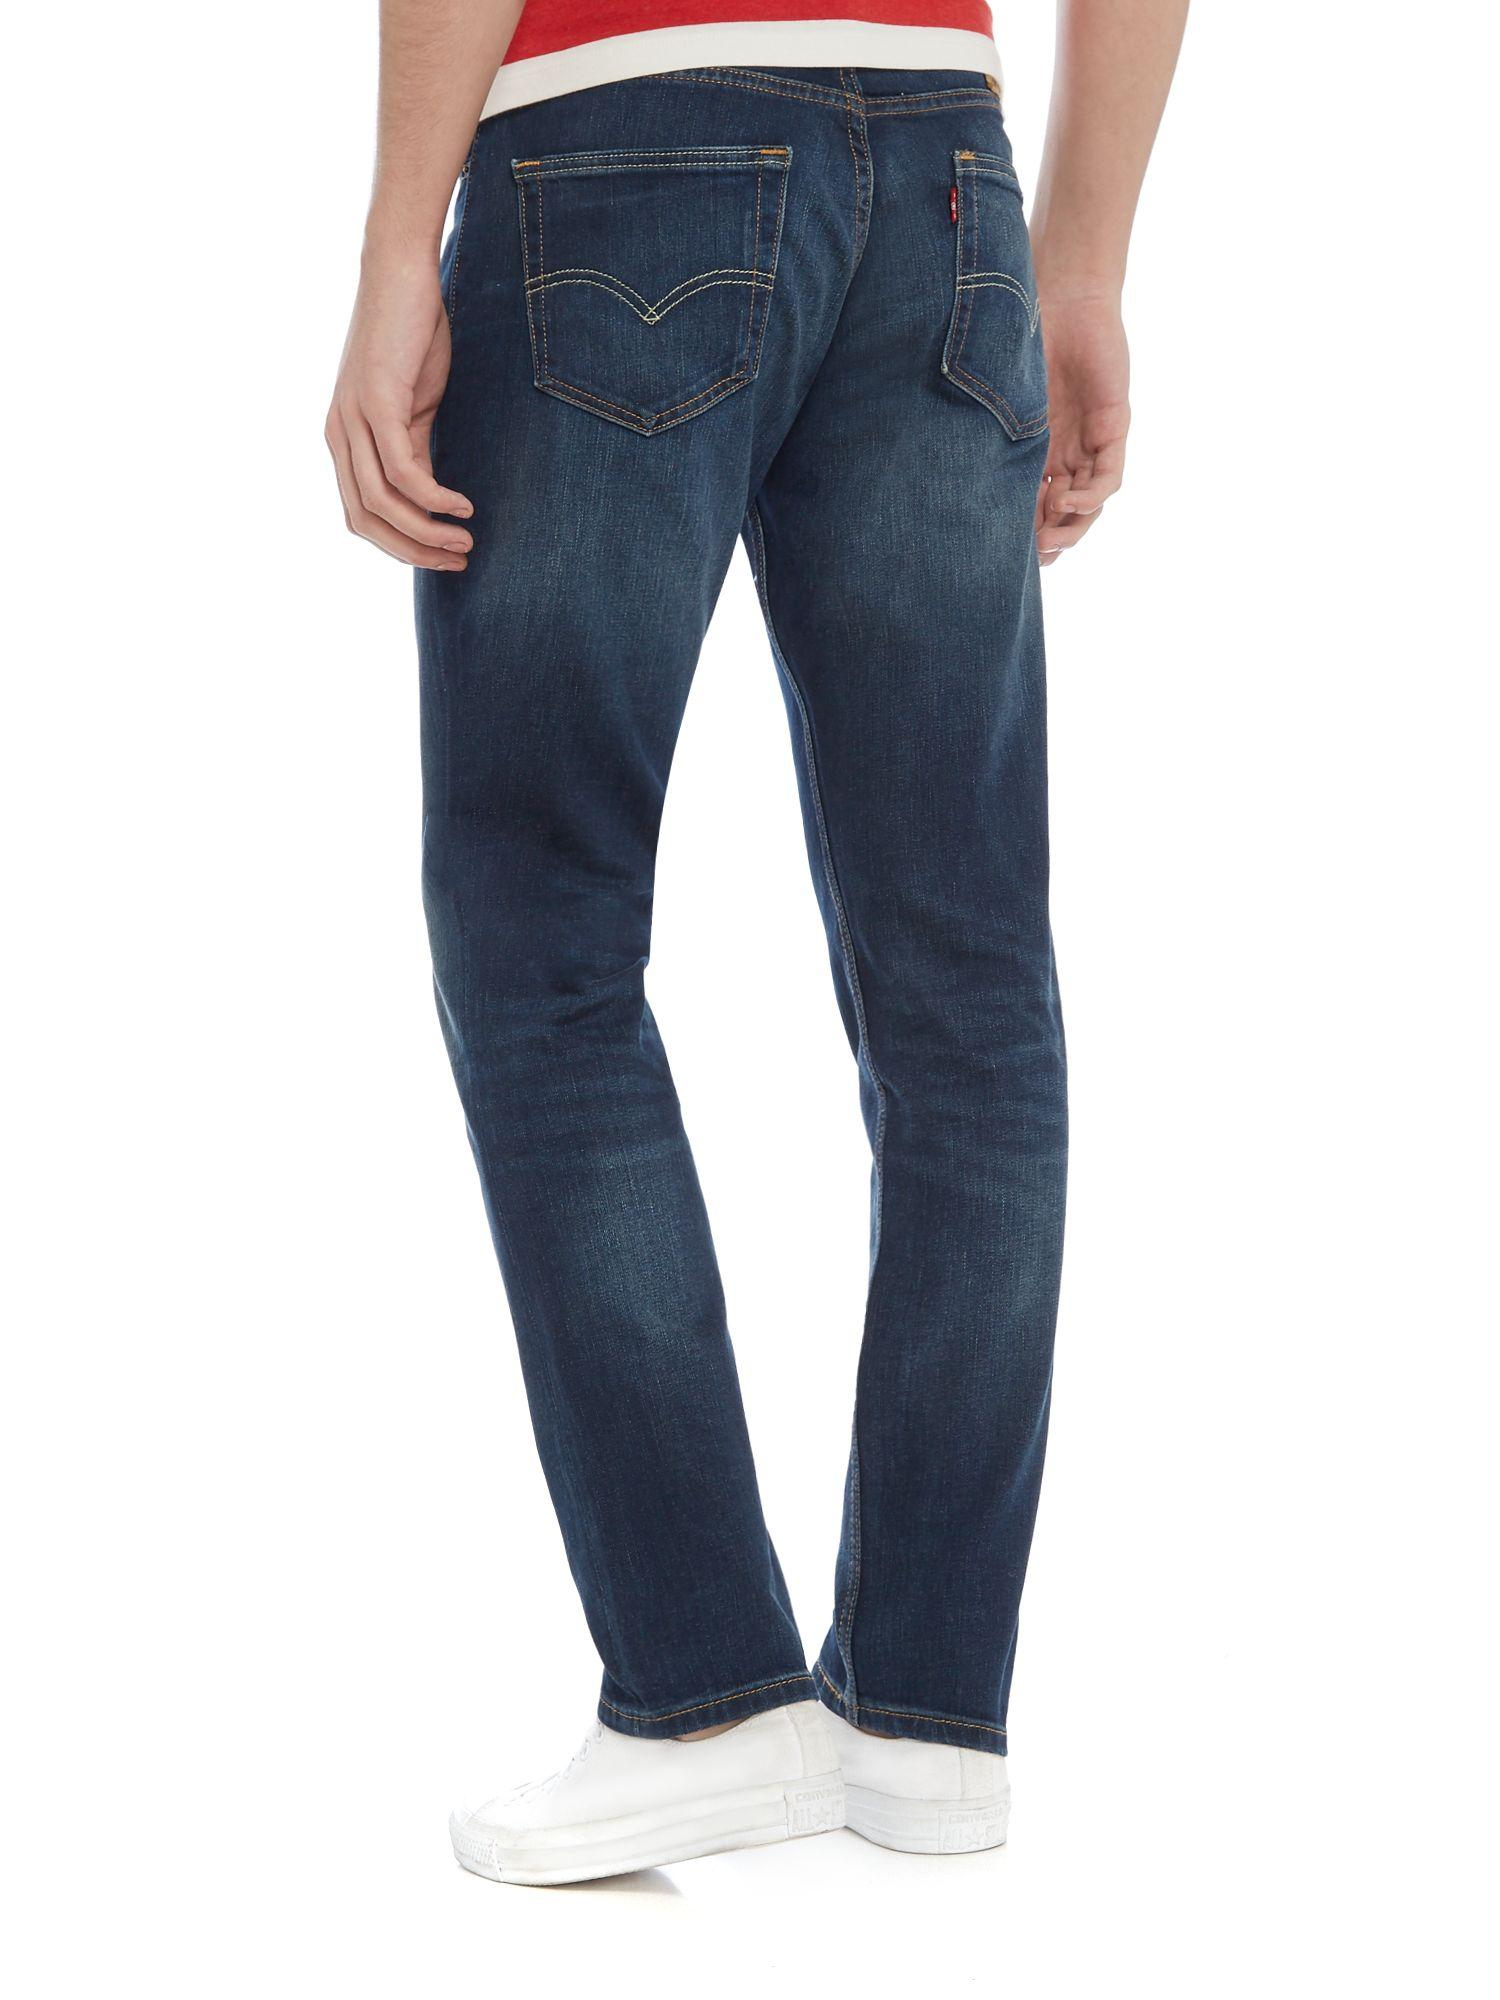 A New Day Women's Flare High Rise Straight Hip & Thigh Stretch Jeans - Denim Trouser (Dark Wash) - by A New Day. $ $ 21 99 Prime. FREE Shipping on eligible orders. Some sizes are Prime eligible. Product Features Denim Trouser (Dark Wash. Rafaella Women's Petite Weekend Bootcut Slim Fit Jeans.